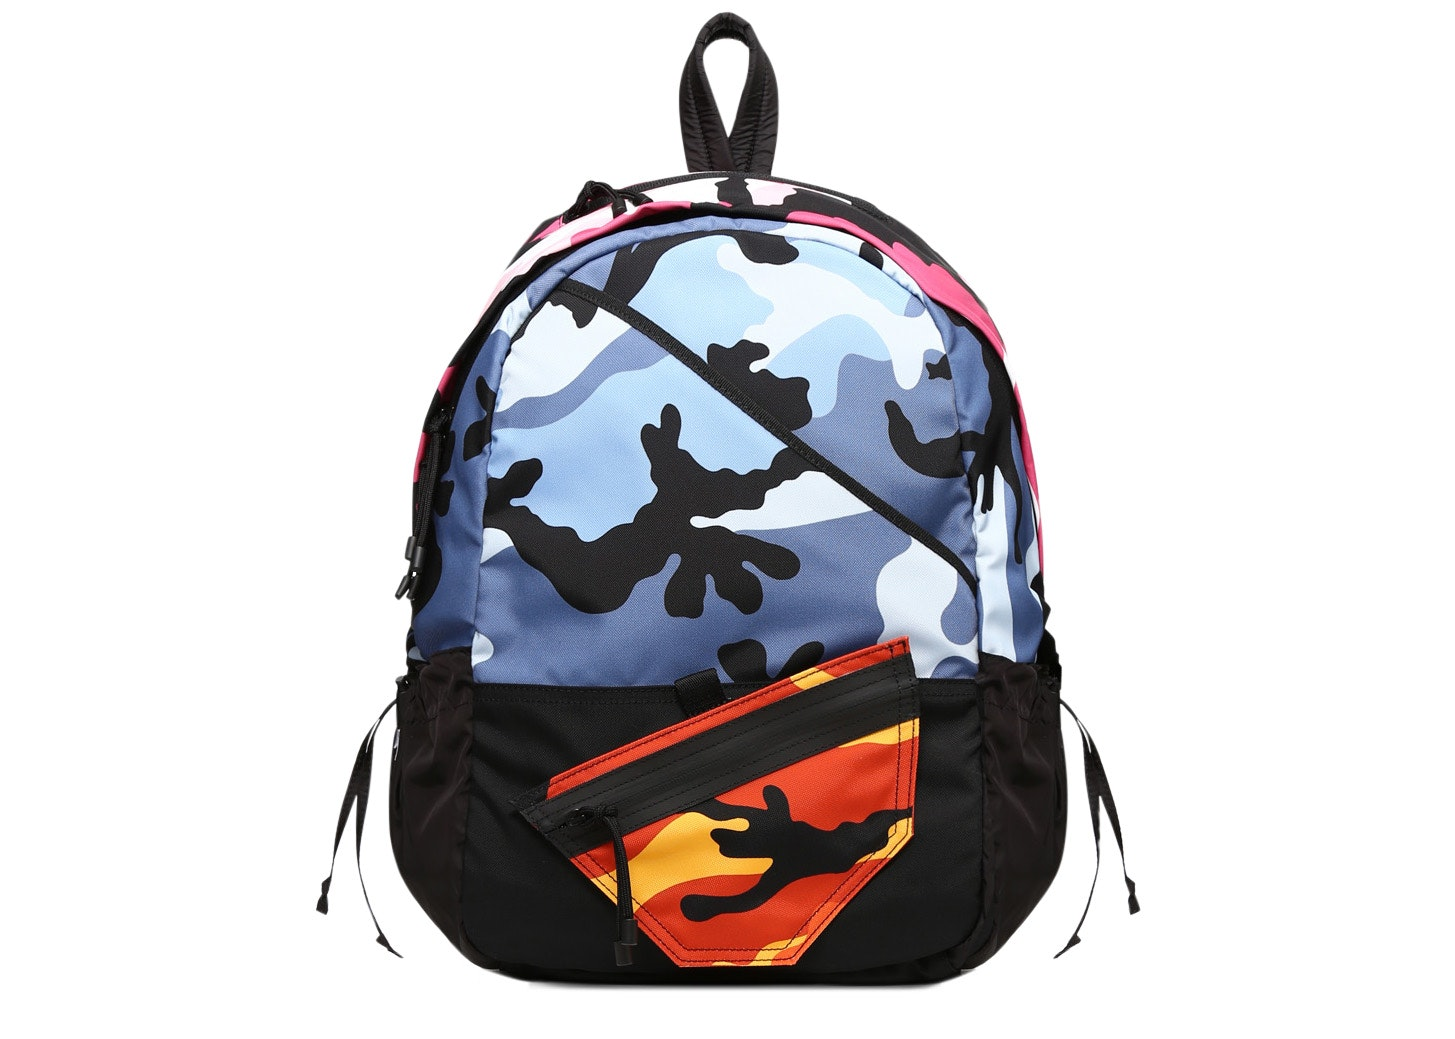 Valentino Nylon Backpack Multi Camouflage Multicolored